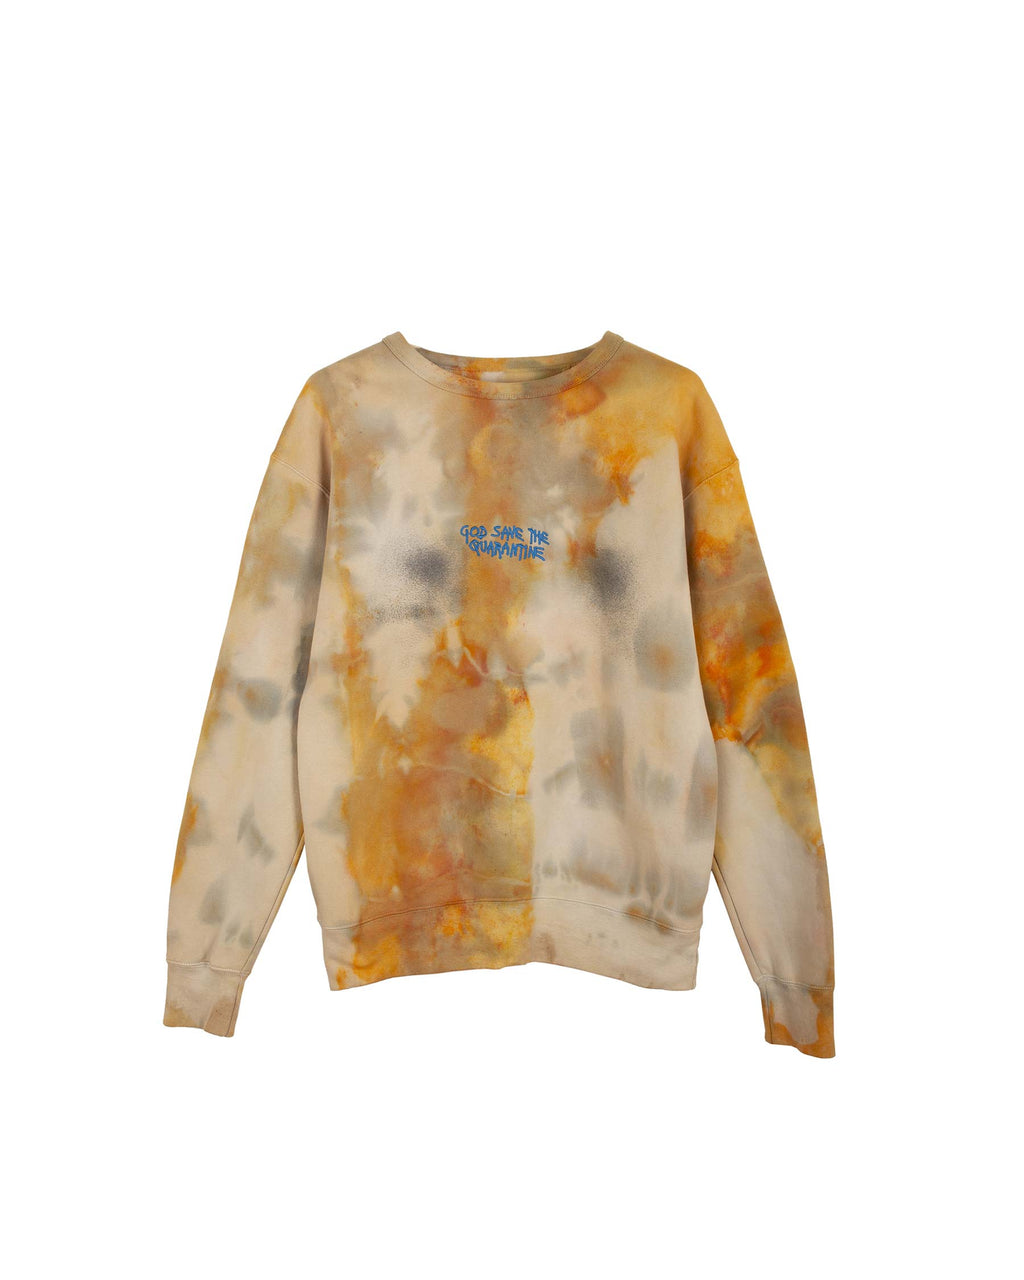 TIE DYE SPRAY CREWNECK MEDIUM #1